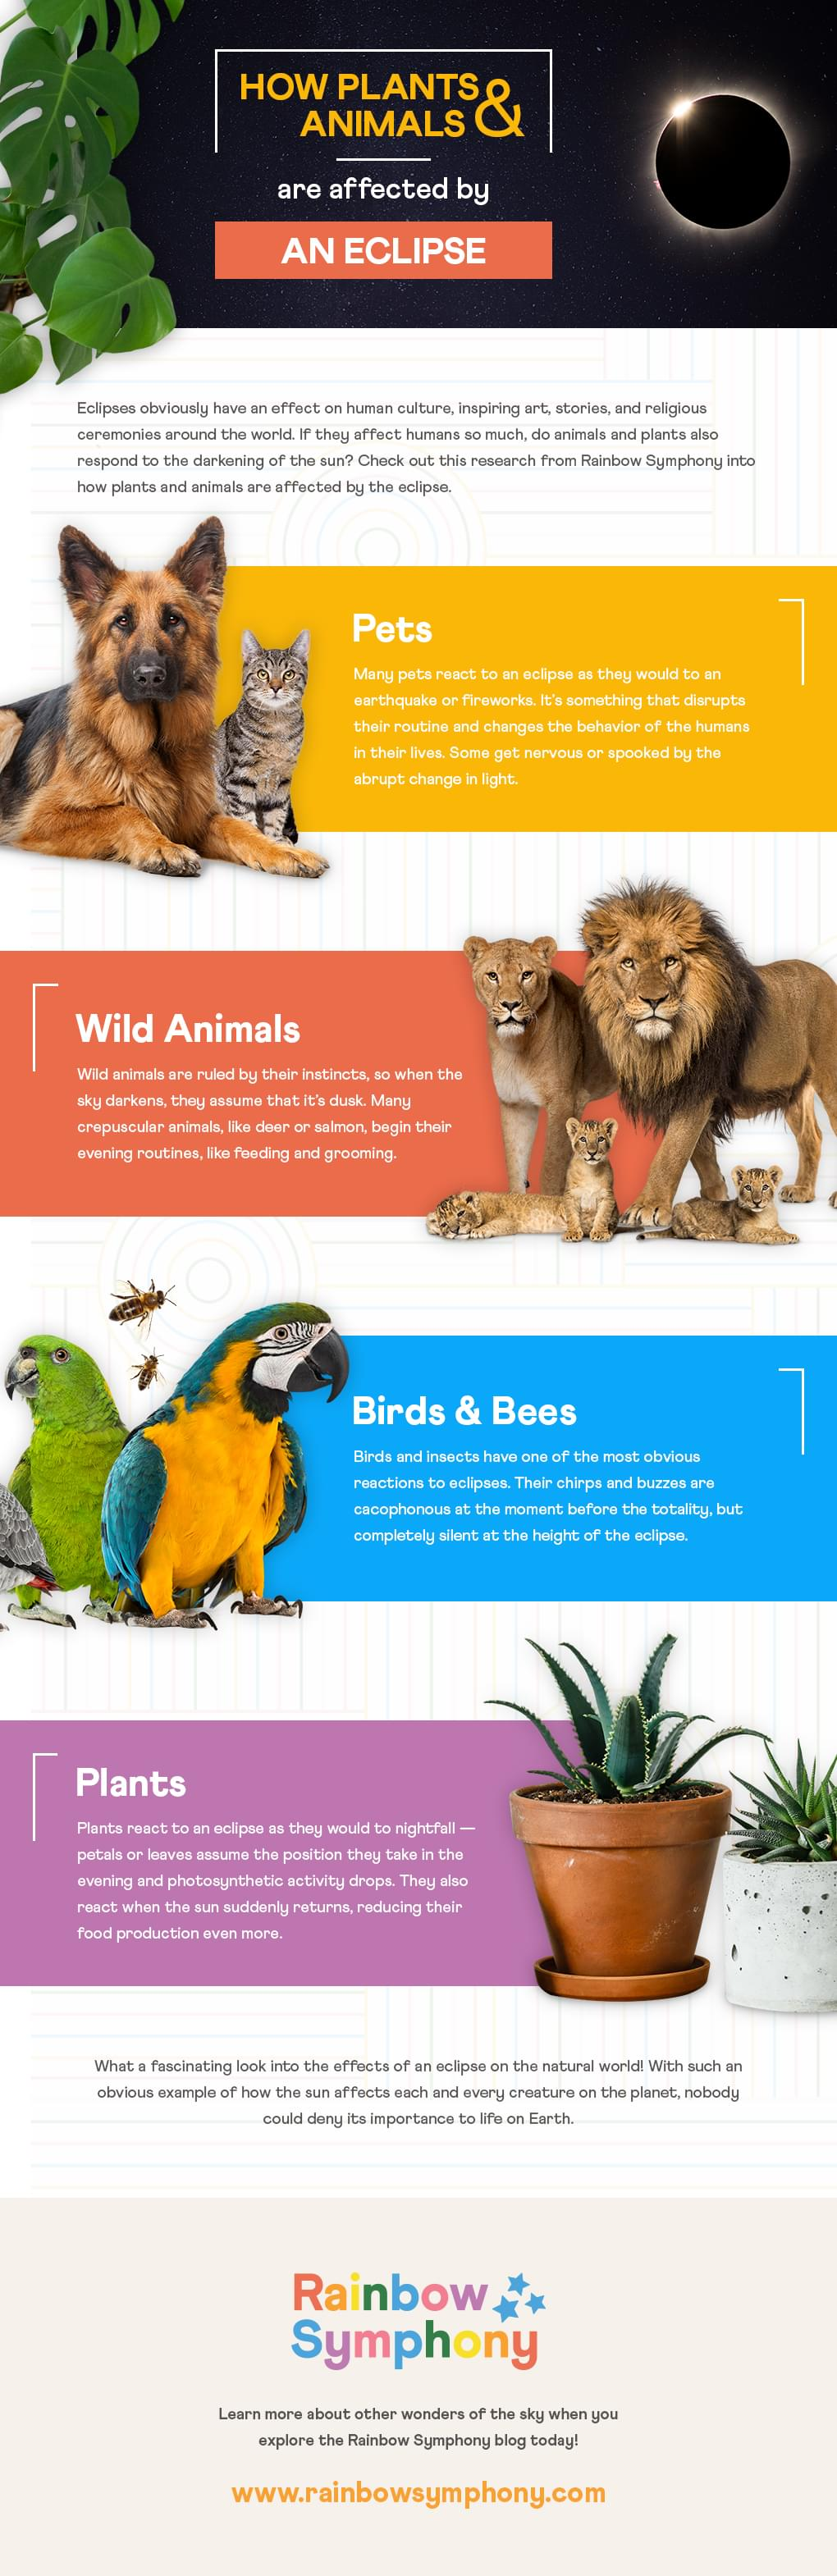 A Rainbow Symphony Infographic About How Plants And Animals Are Affected By An Eclipse